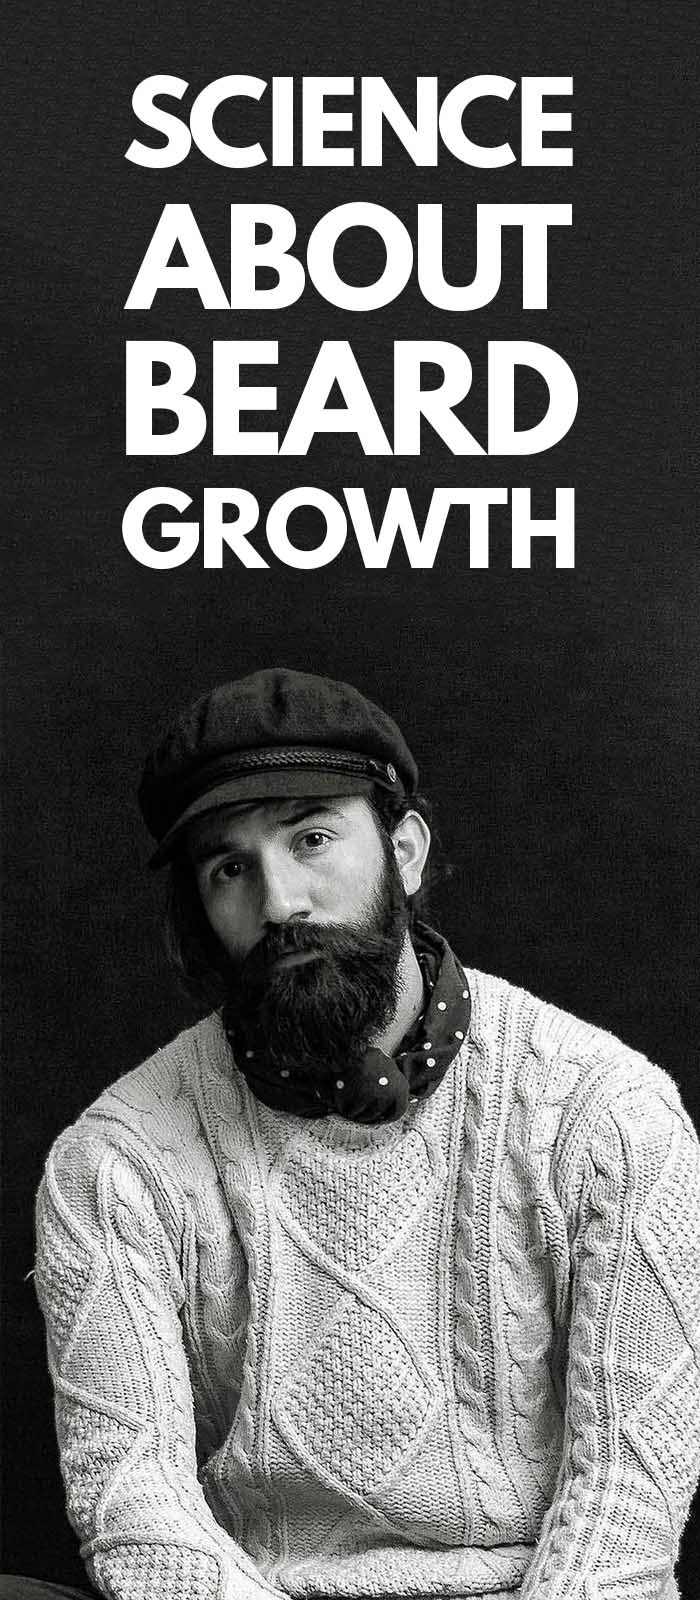 Science About Beard Growth.